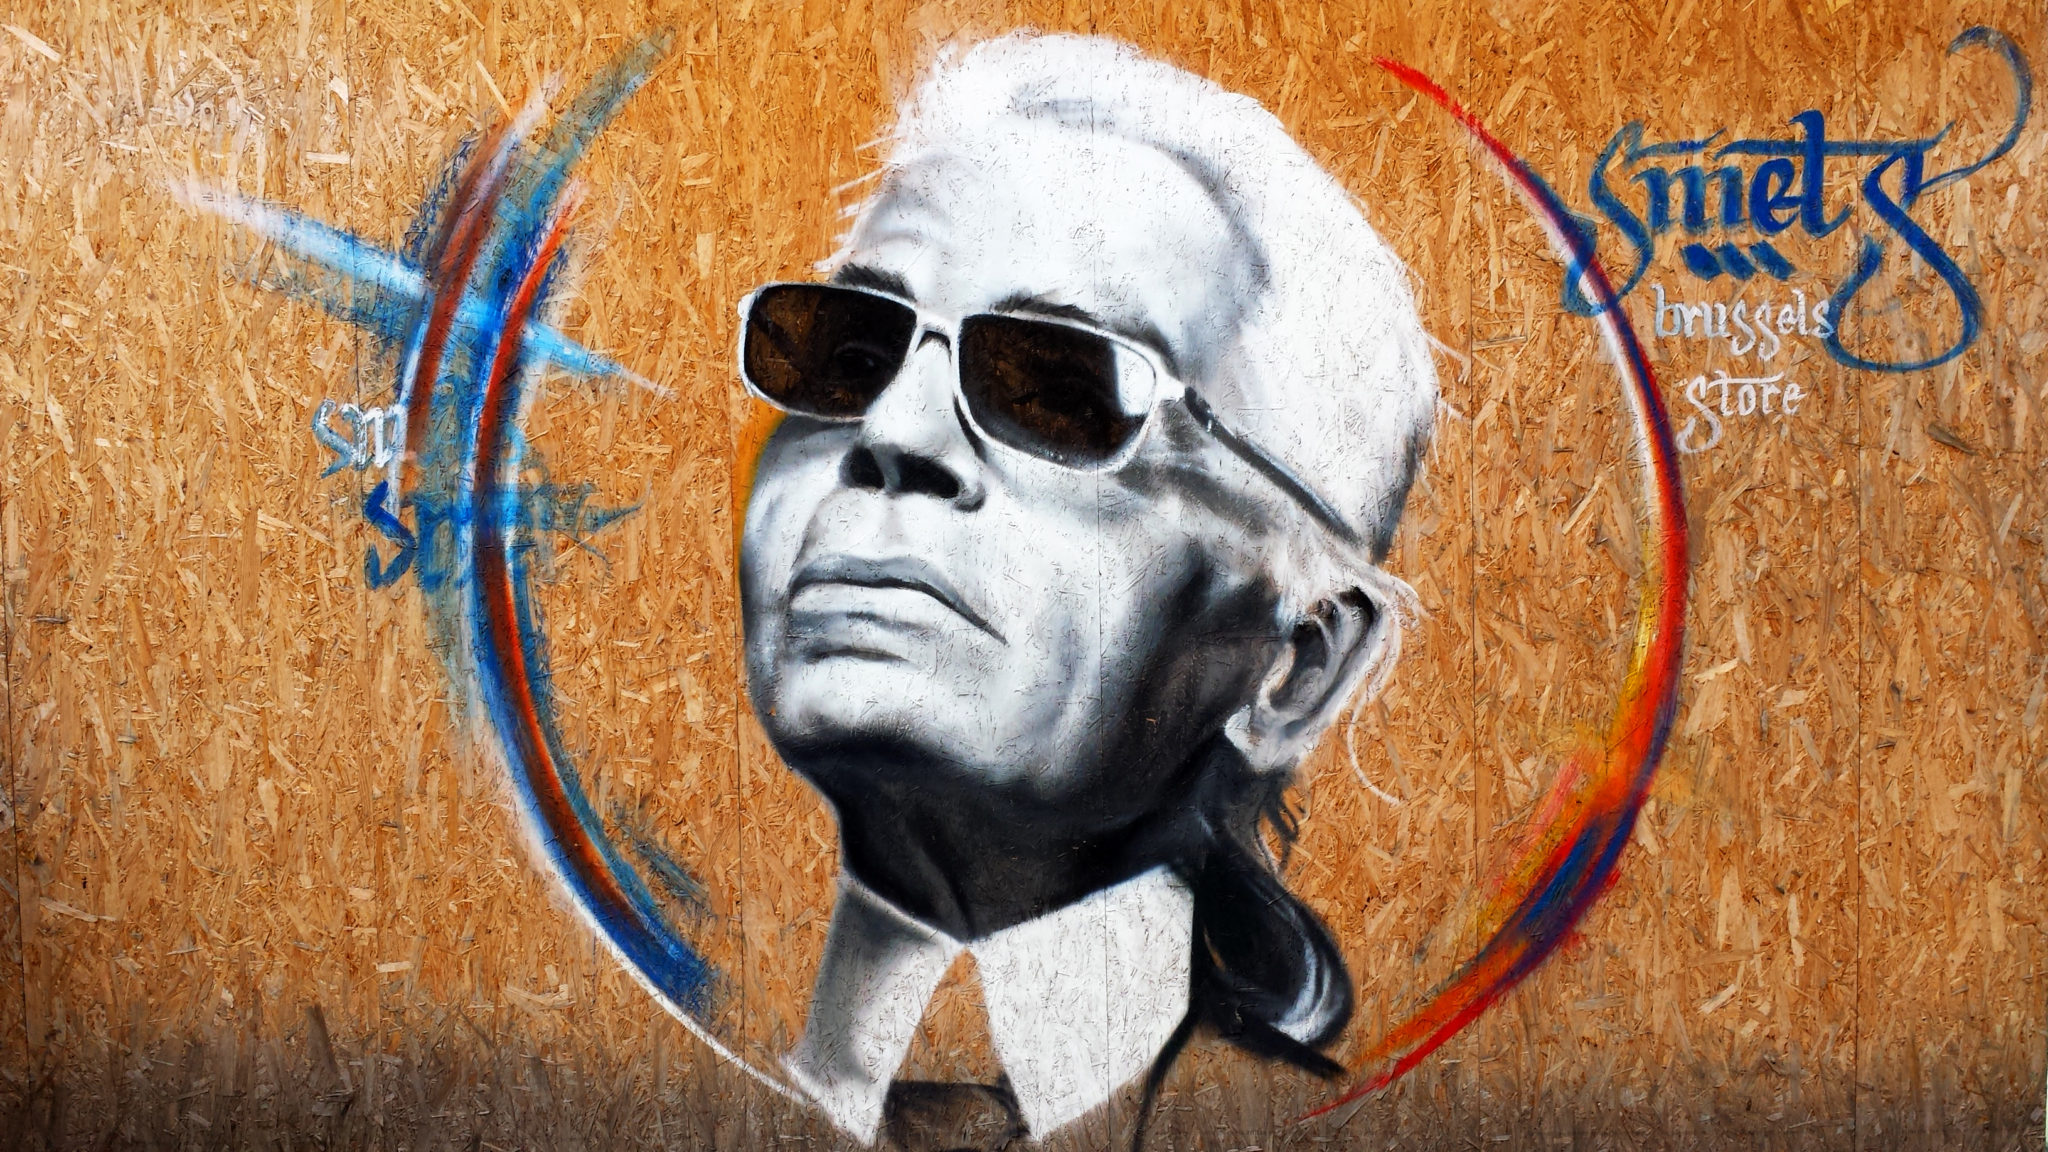 Hema_Bruxelles_bonnes_adresses_shopping_fashion_smets_street_art_karl_lagerfeld